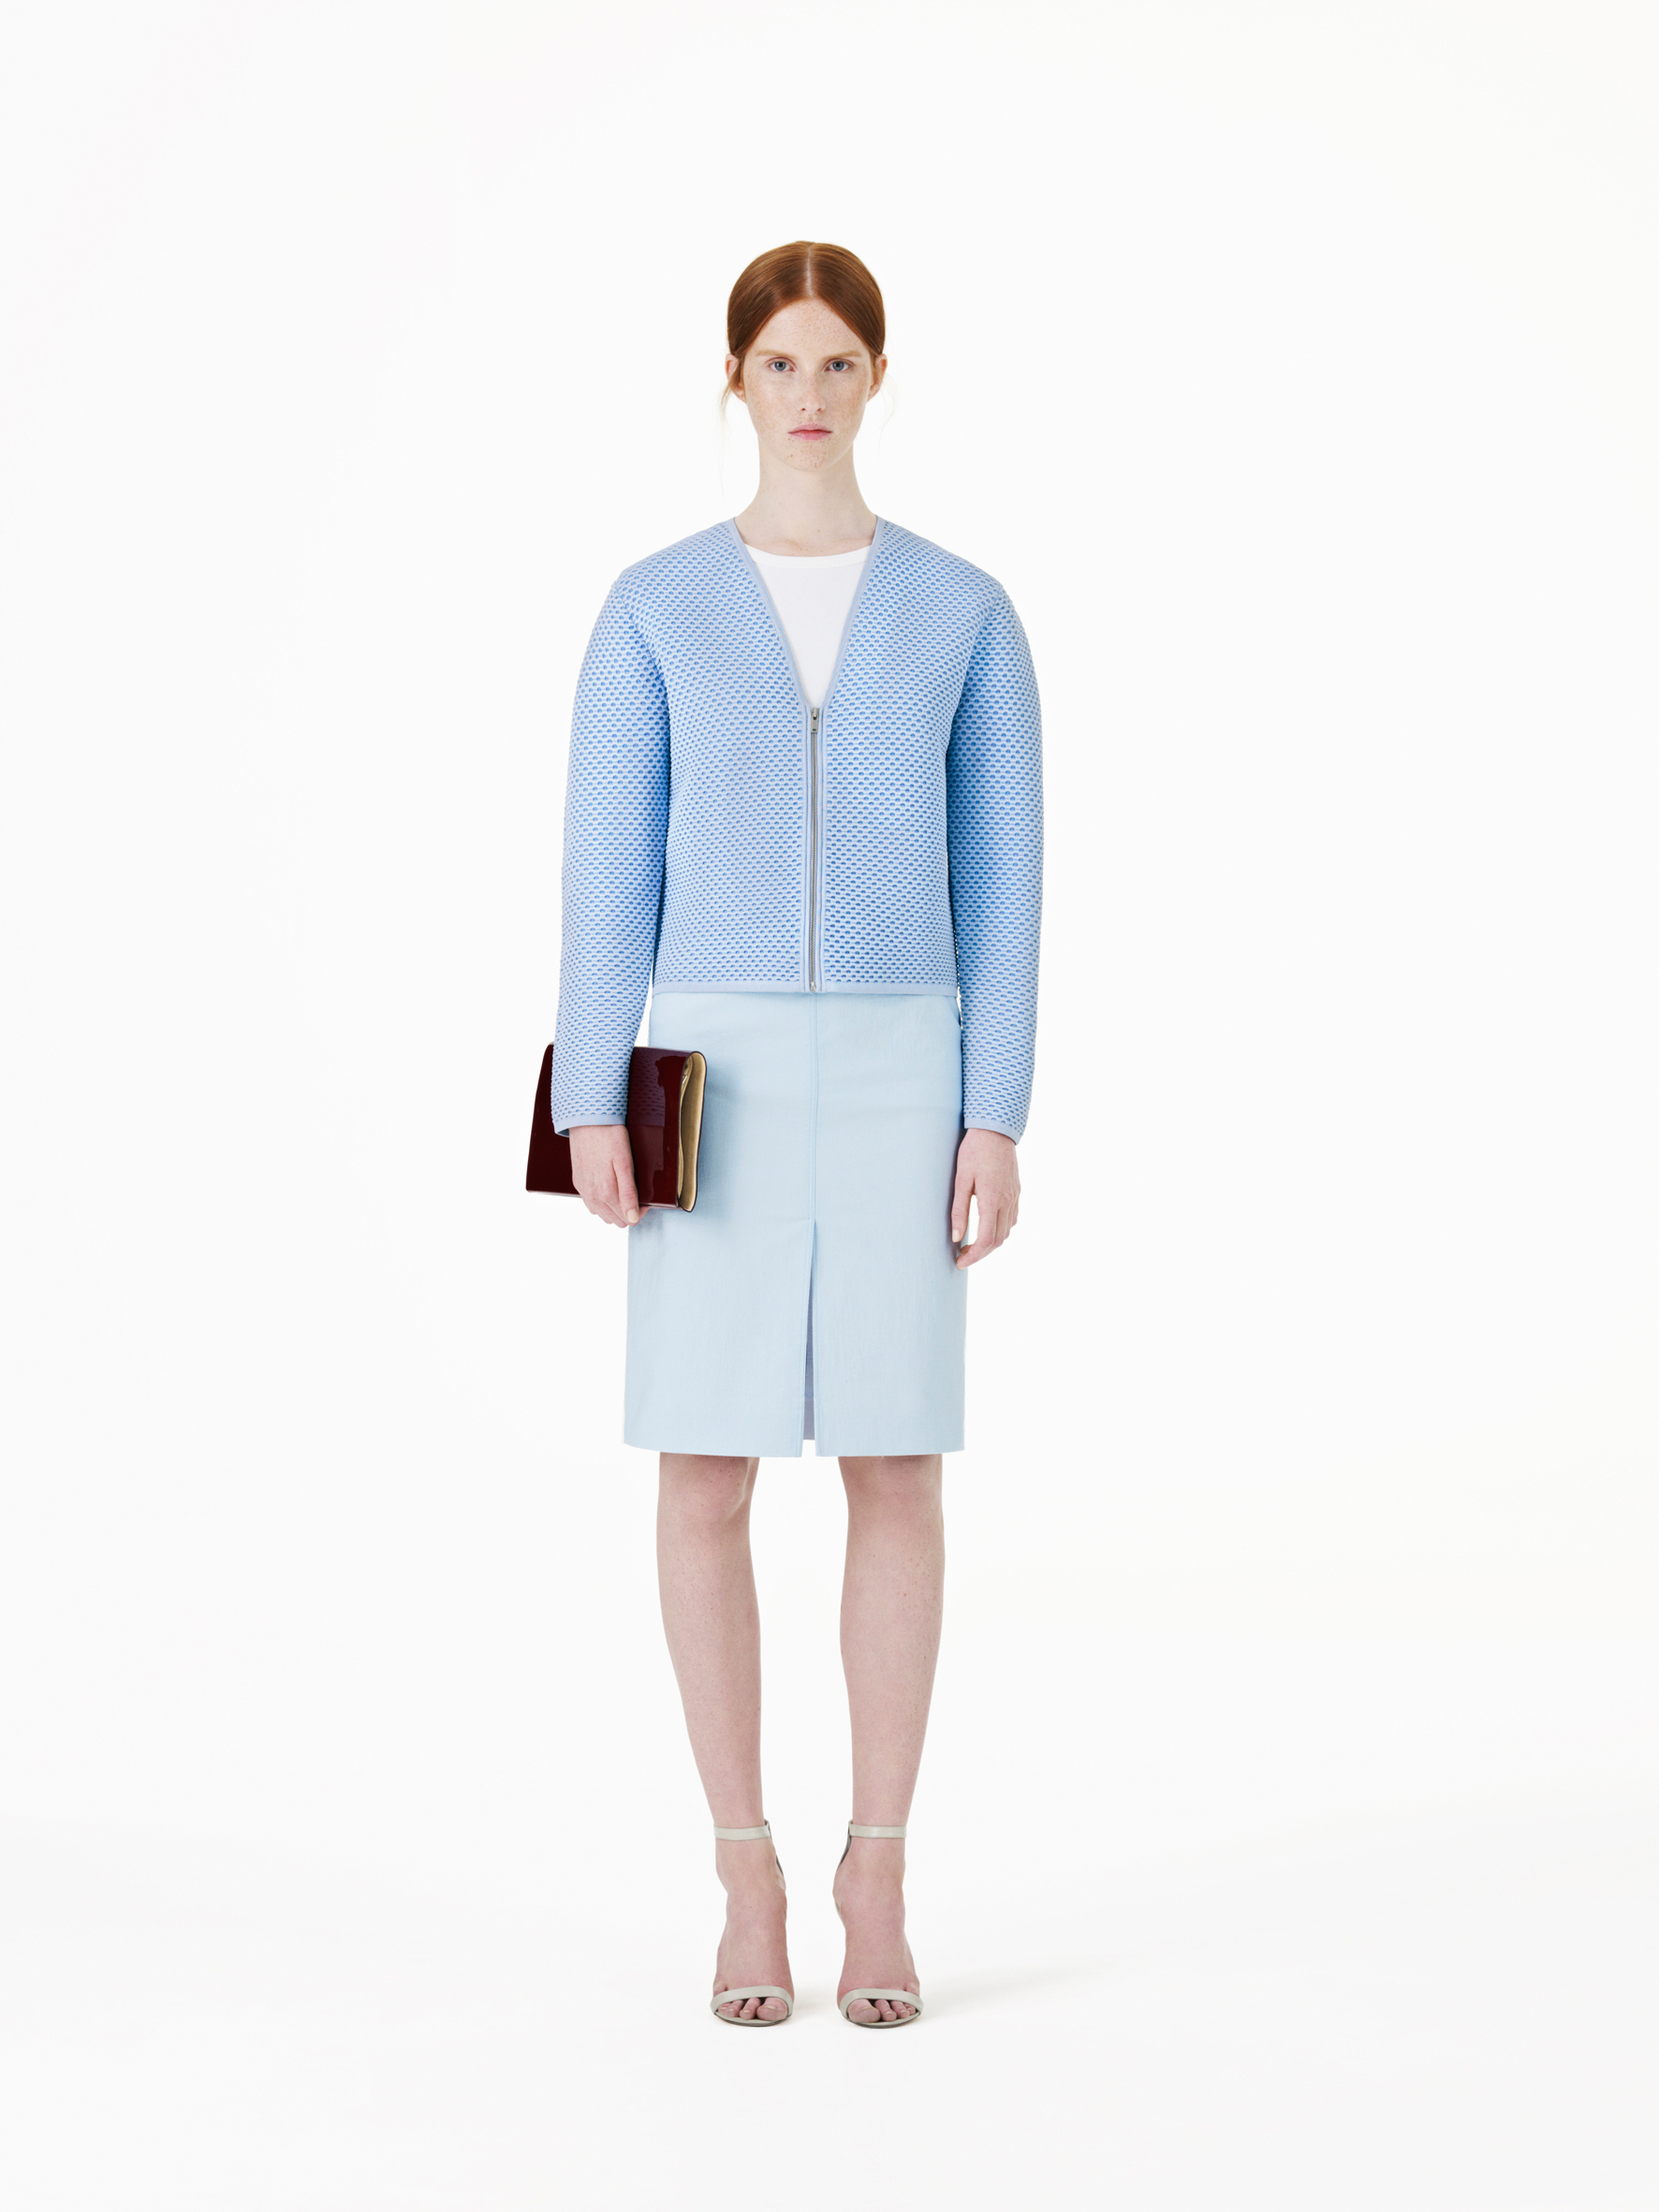 COS_SS14_WOMENS_06_lowres